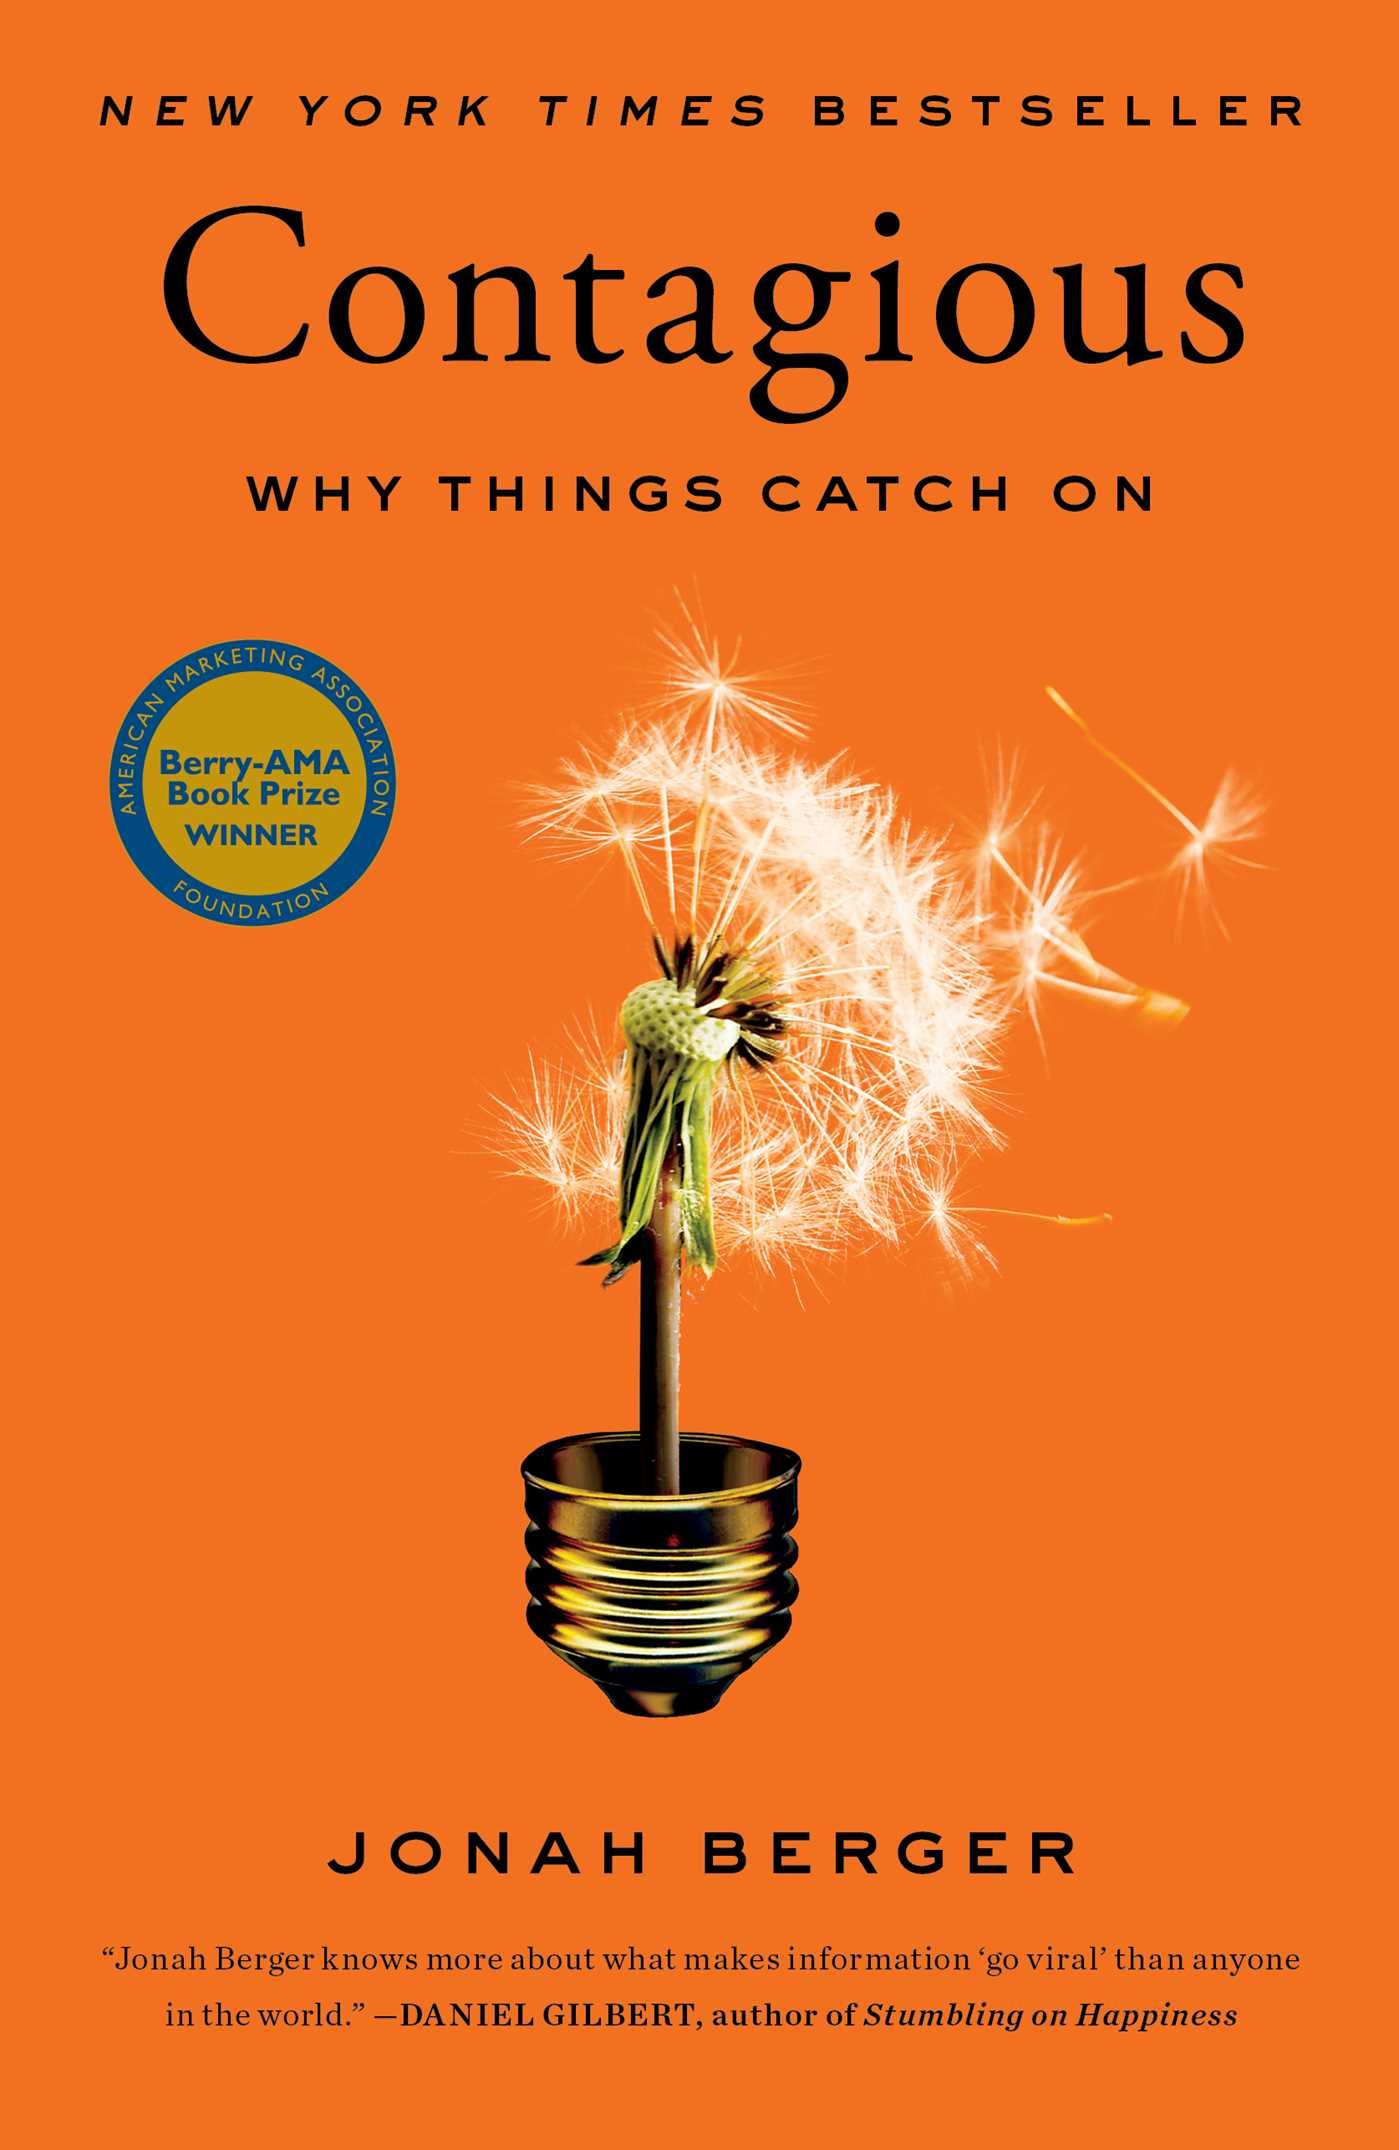 Contagious: Why Things Catch on Hardcover